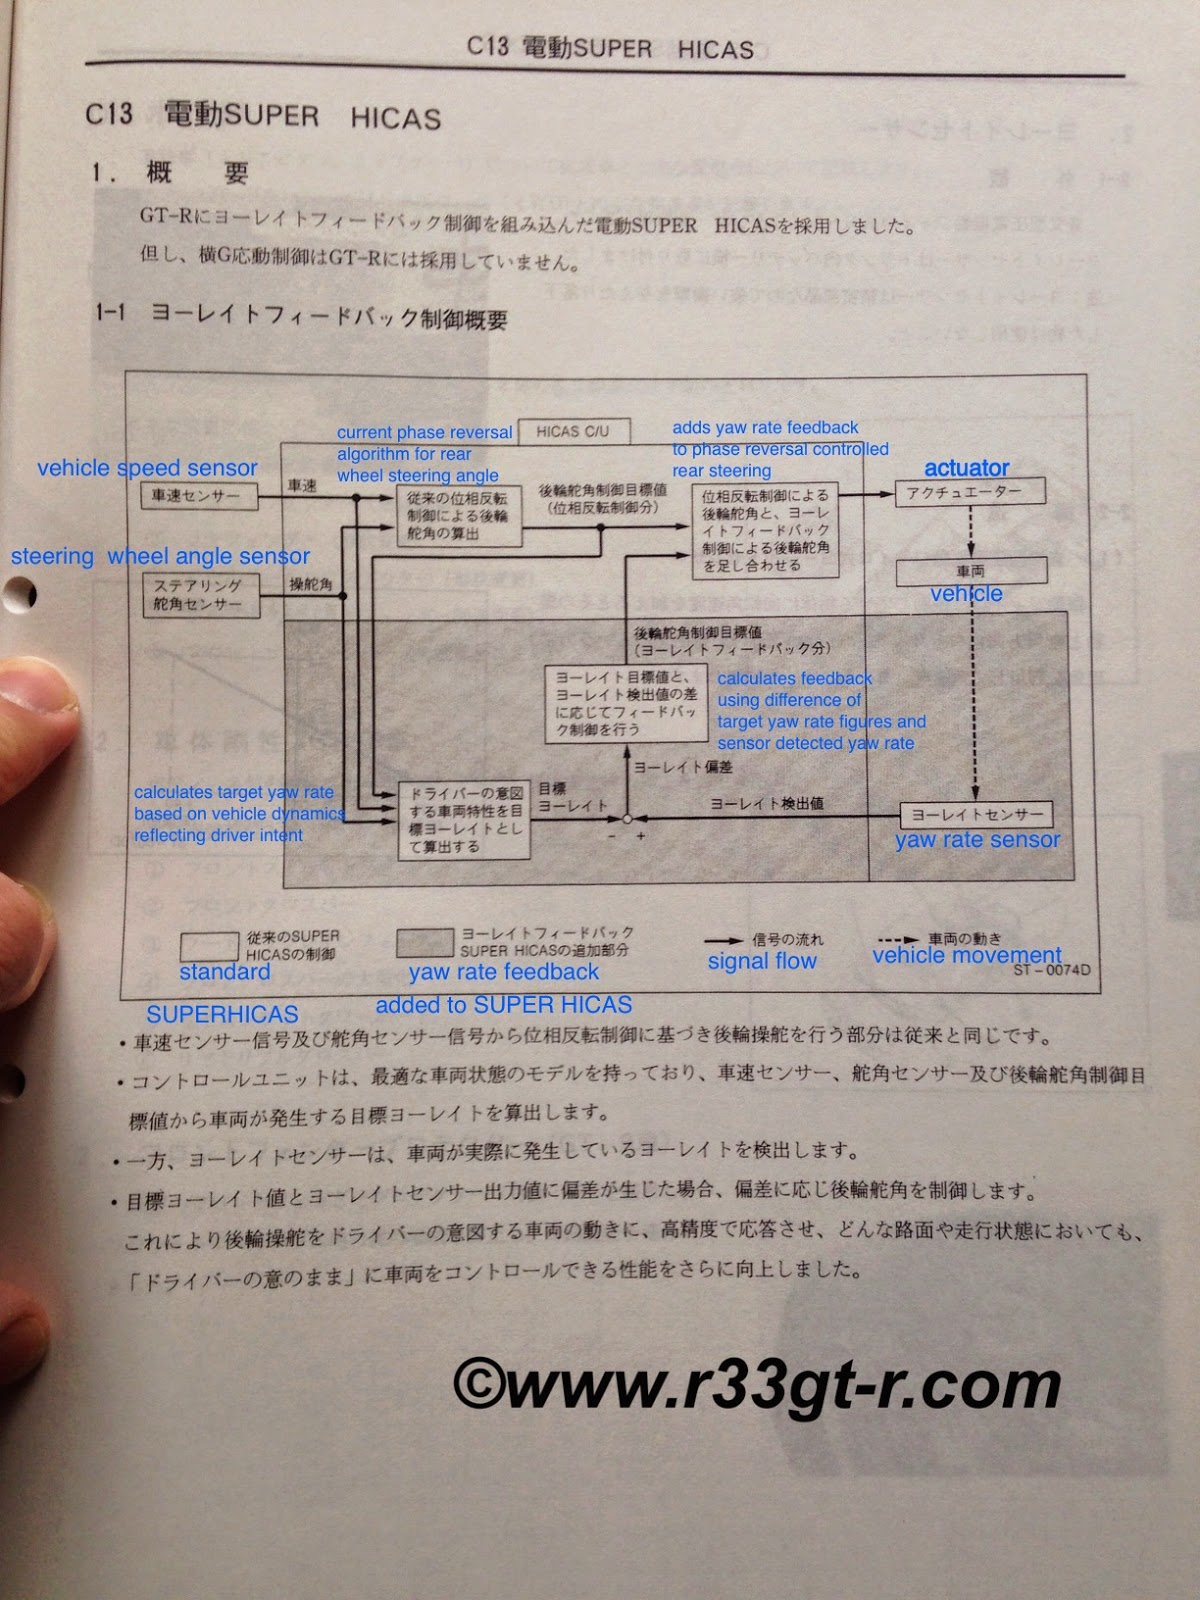 R32 Gtr Hicas Wiring Diagram Electrical Ecu One Man S Lonely Adventures In His R33 Skyline Gt R Rh Skyline255 Rssing Com